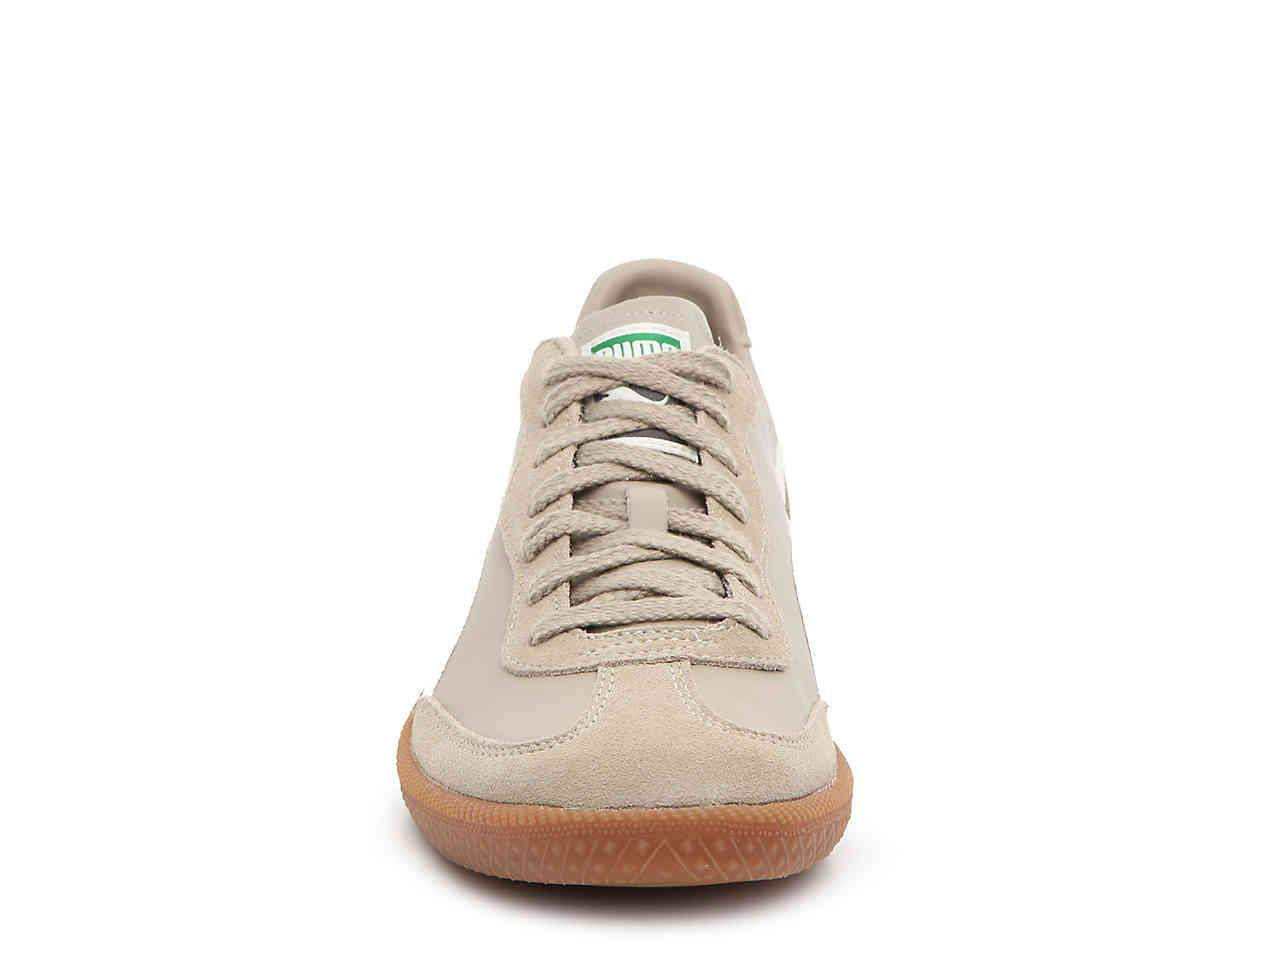 detailed look 2c23e f4868 PUMA Super Liga Og Retro Sneaker in Natural for Men - Lyst